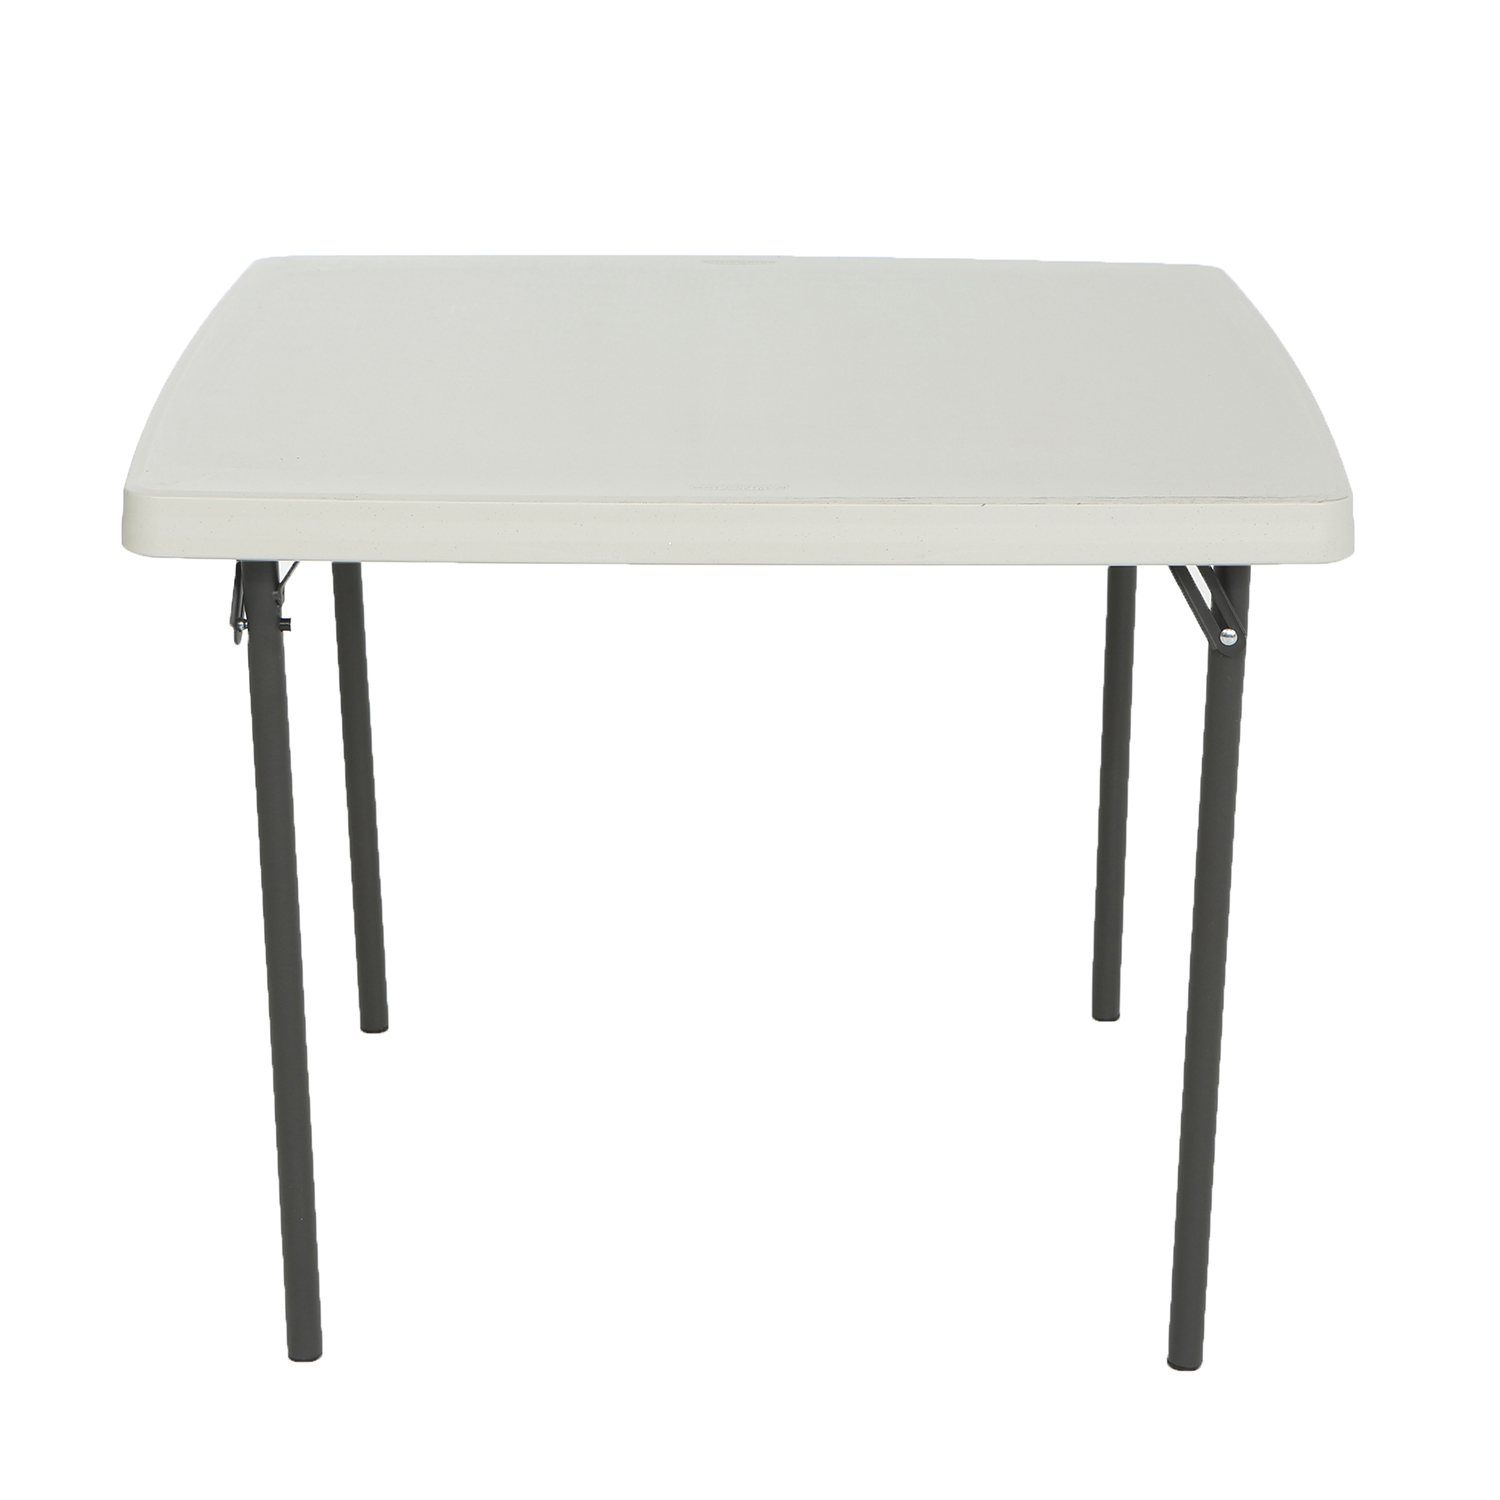 "Lifetime 37"" mercial Grade Card Table Select Color Sam s Club"